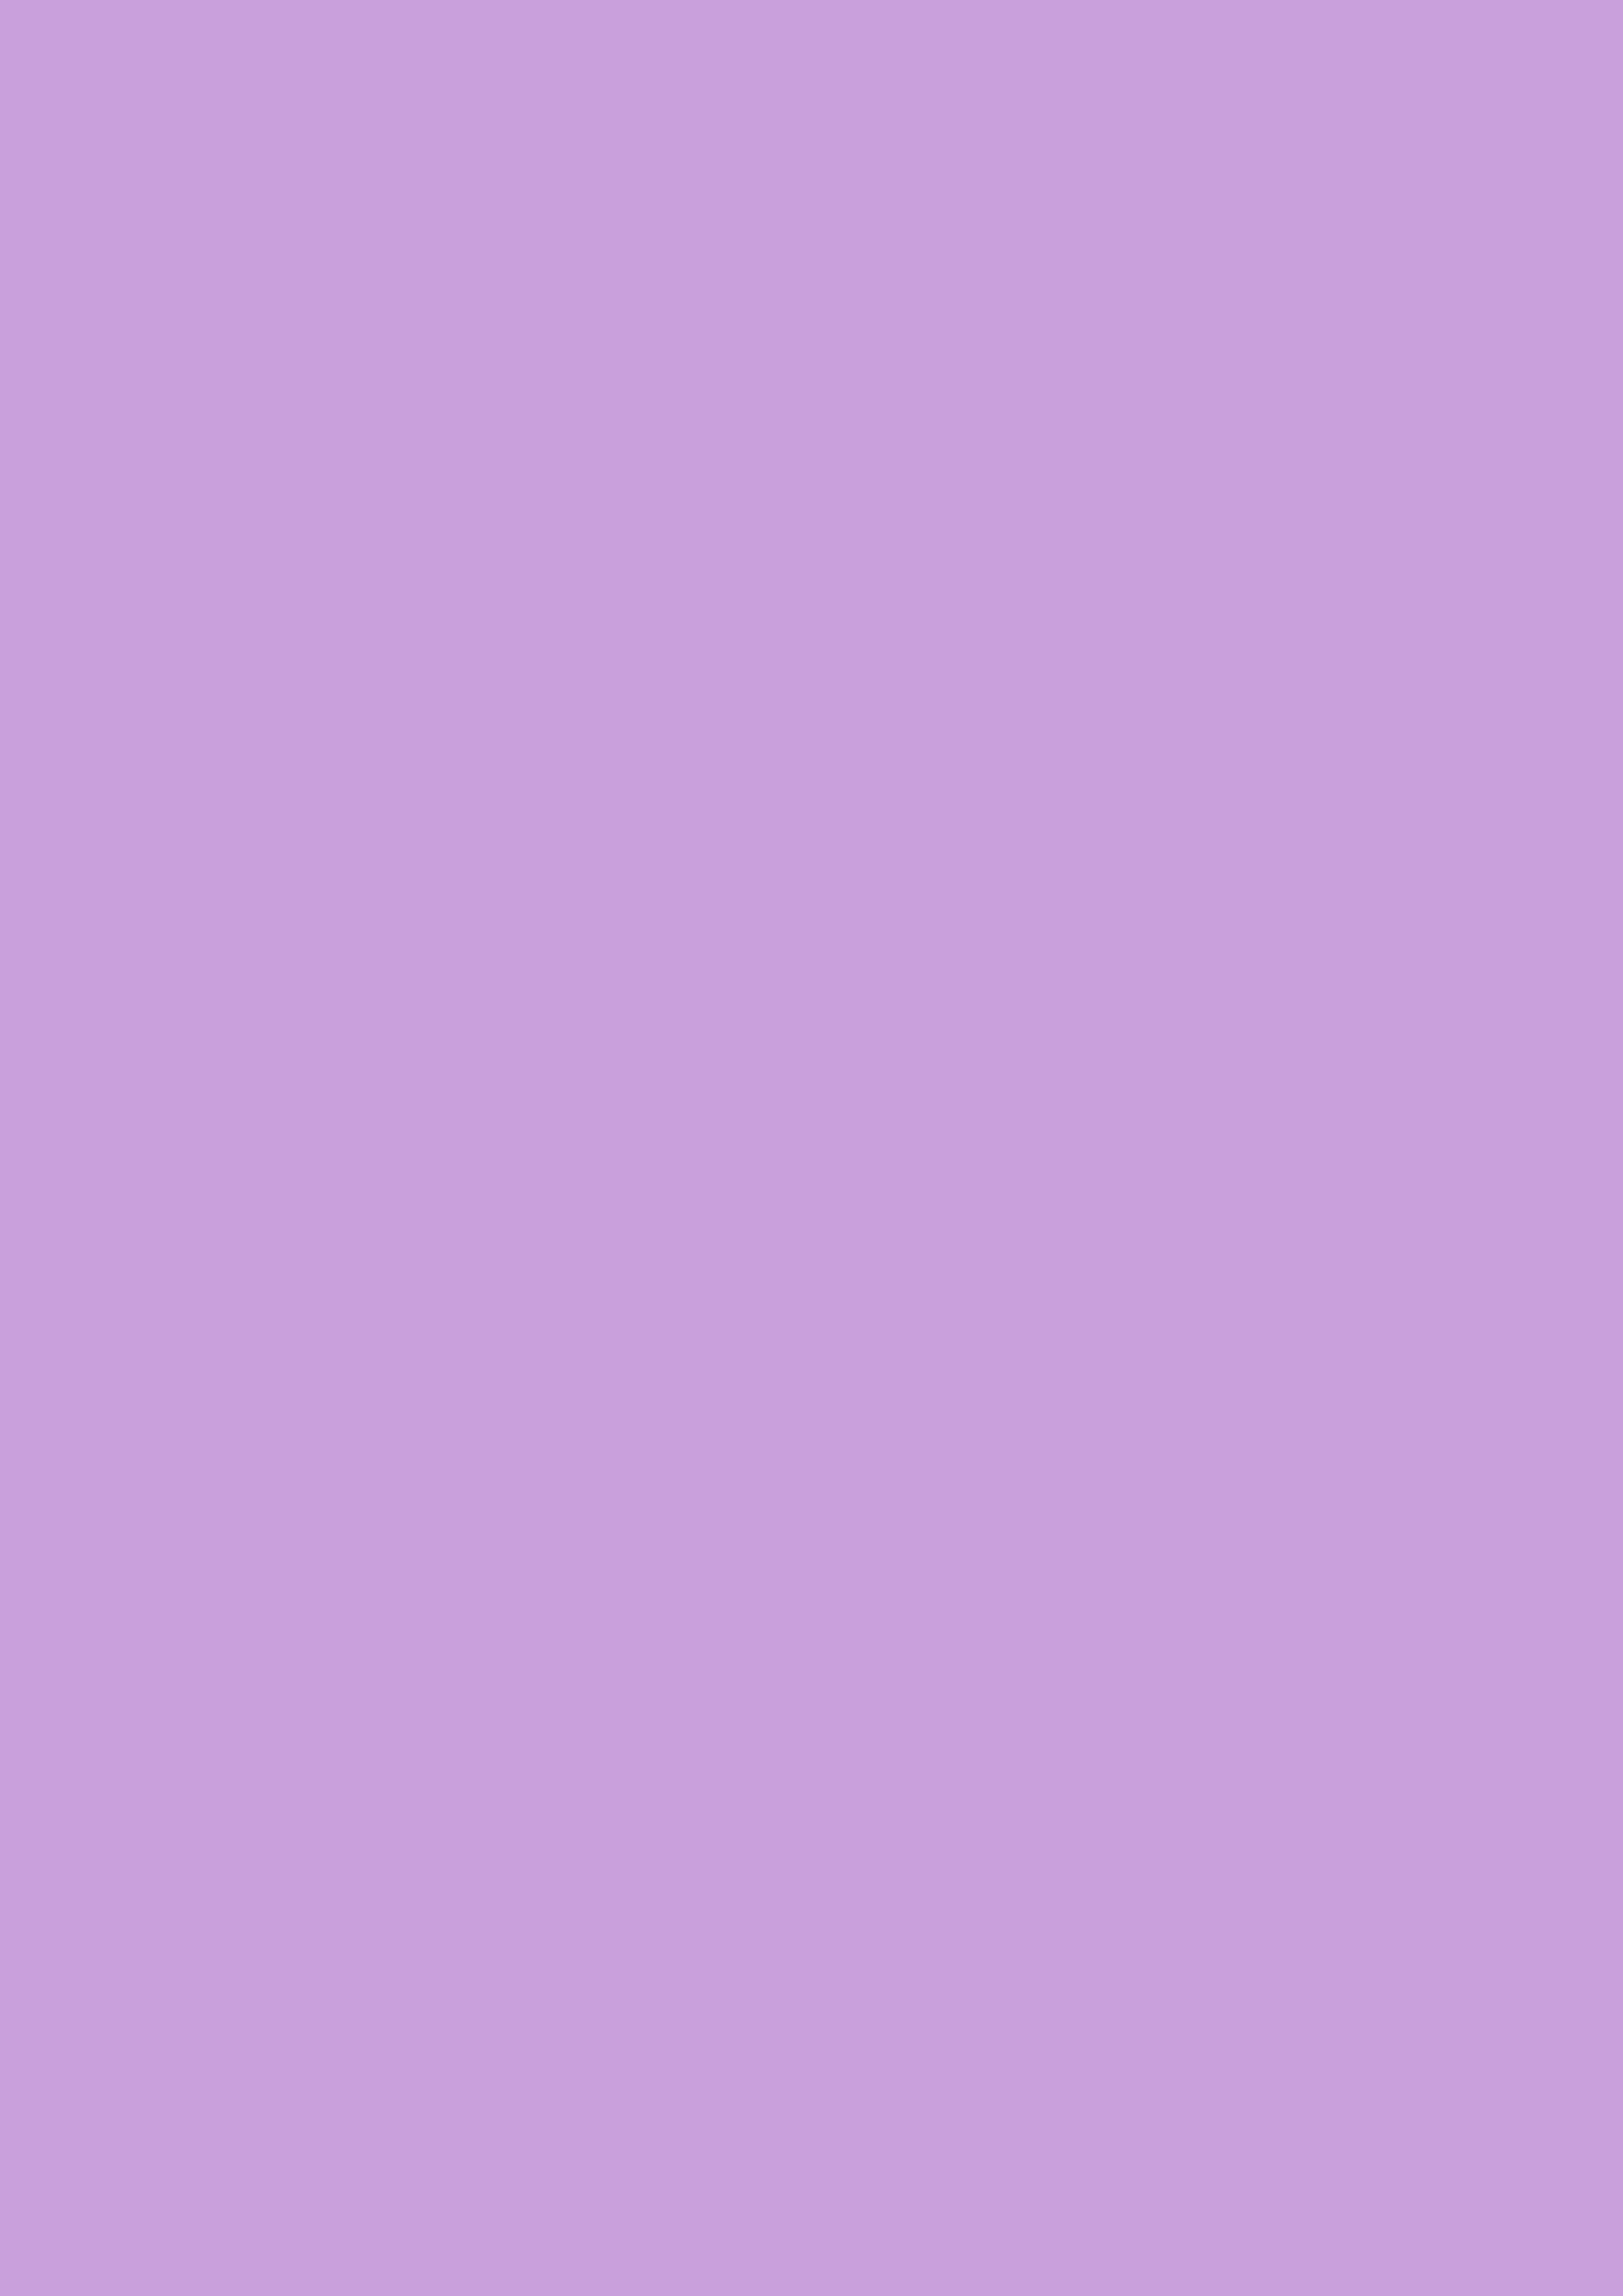 2480x3508 Wisteria Solid Color Background